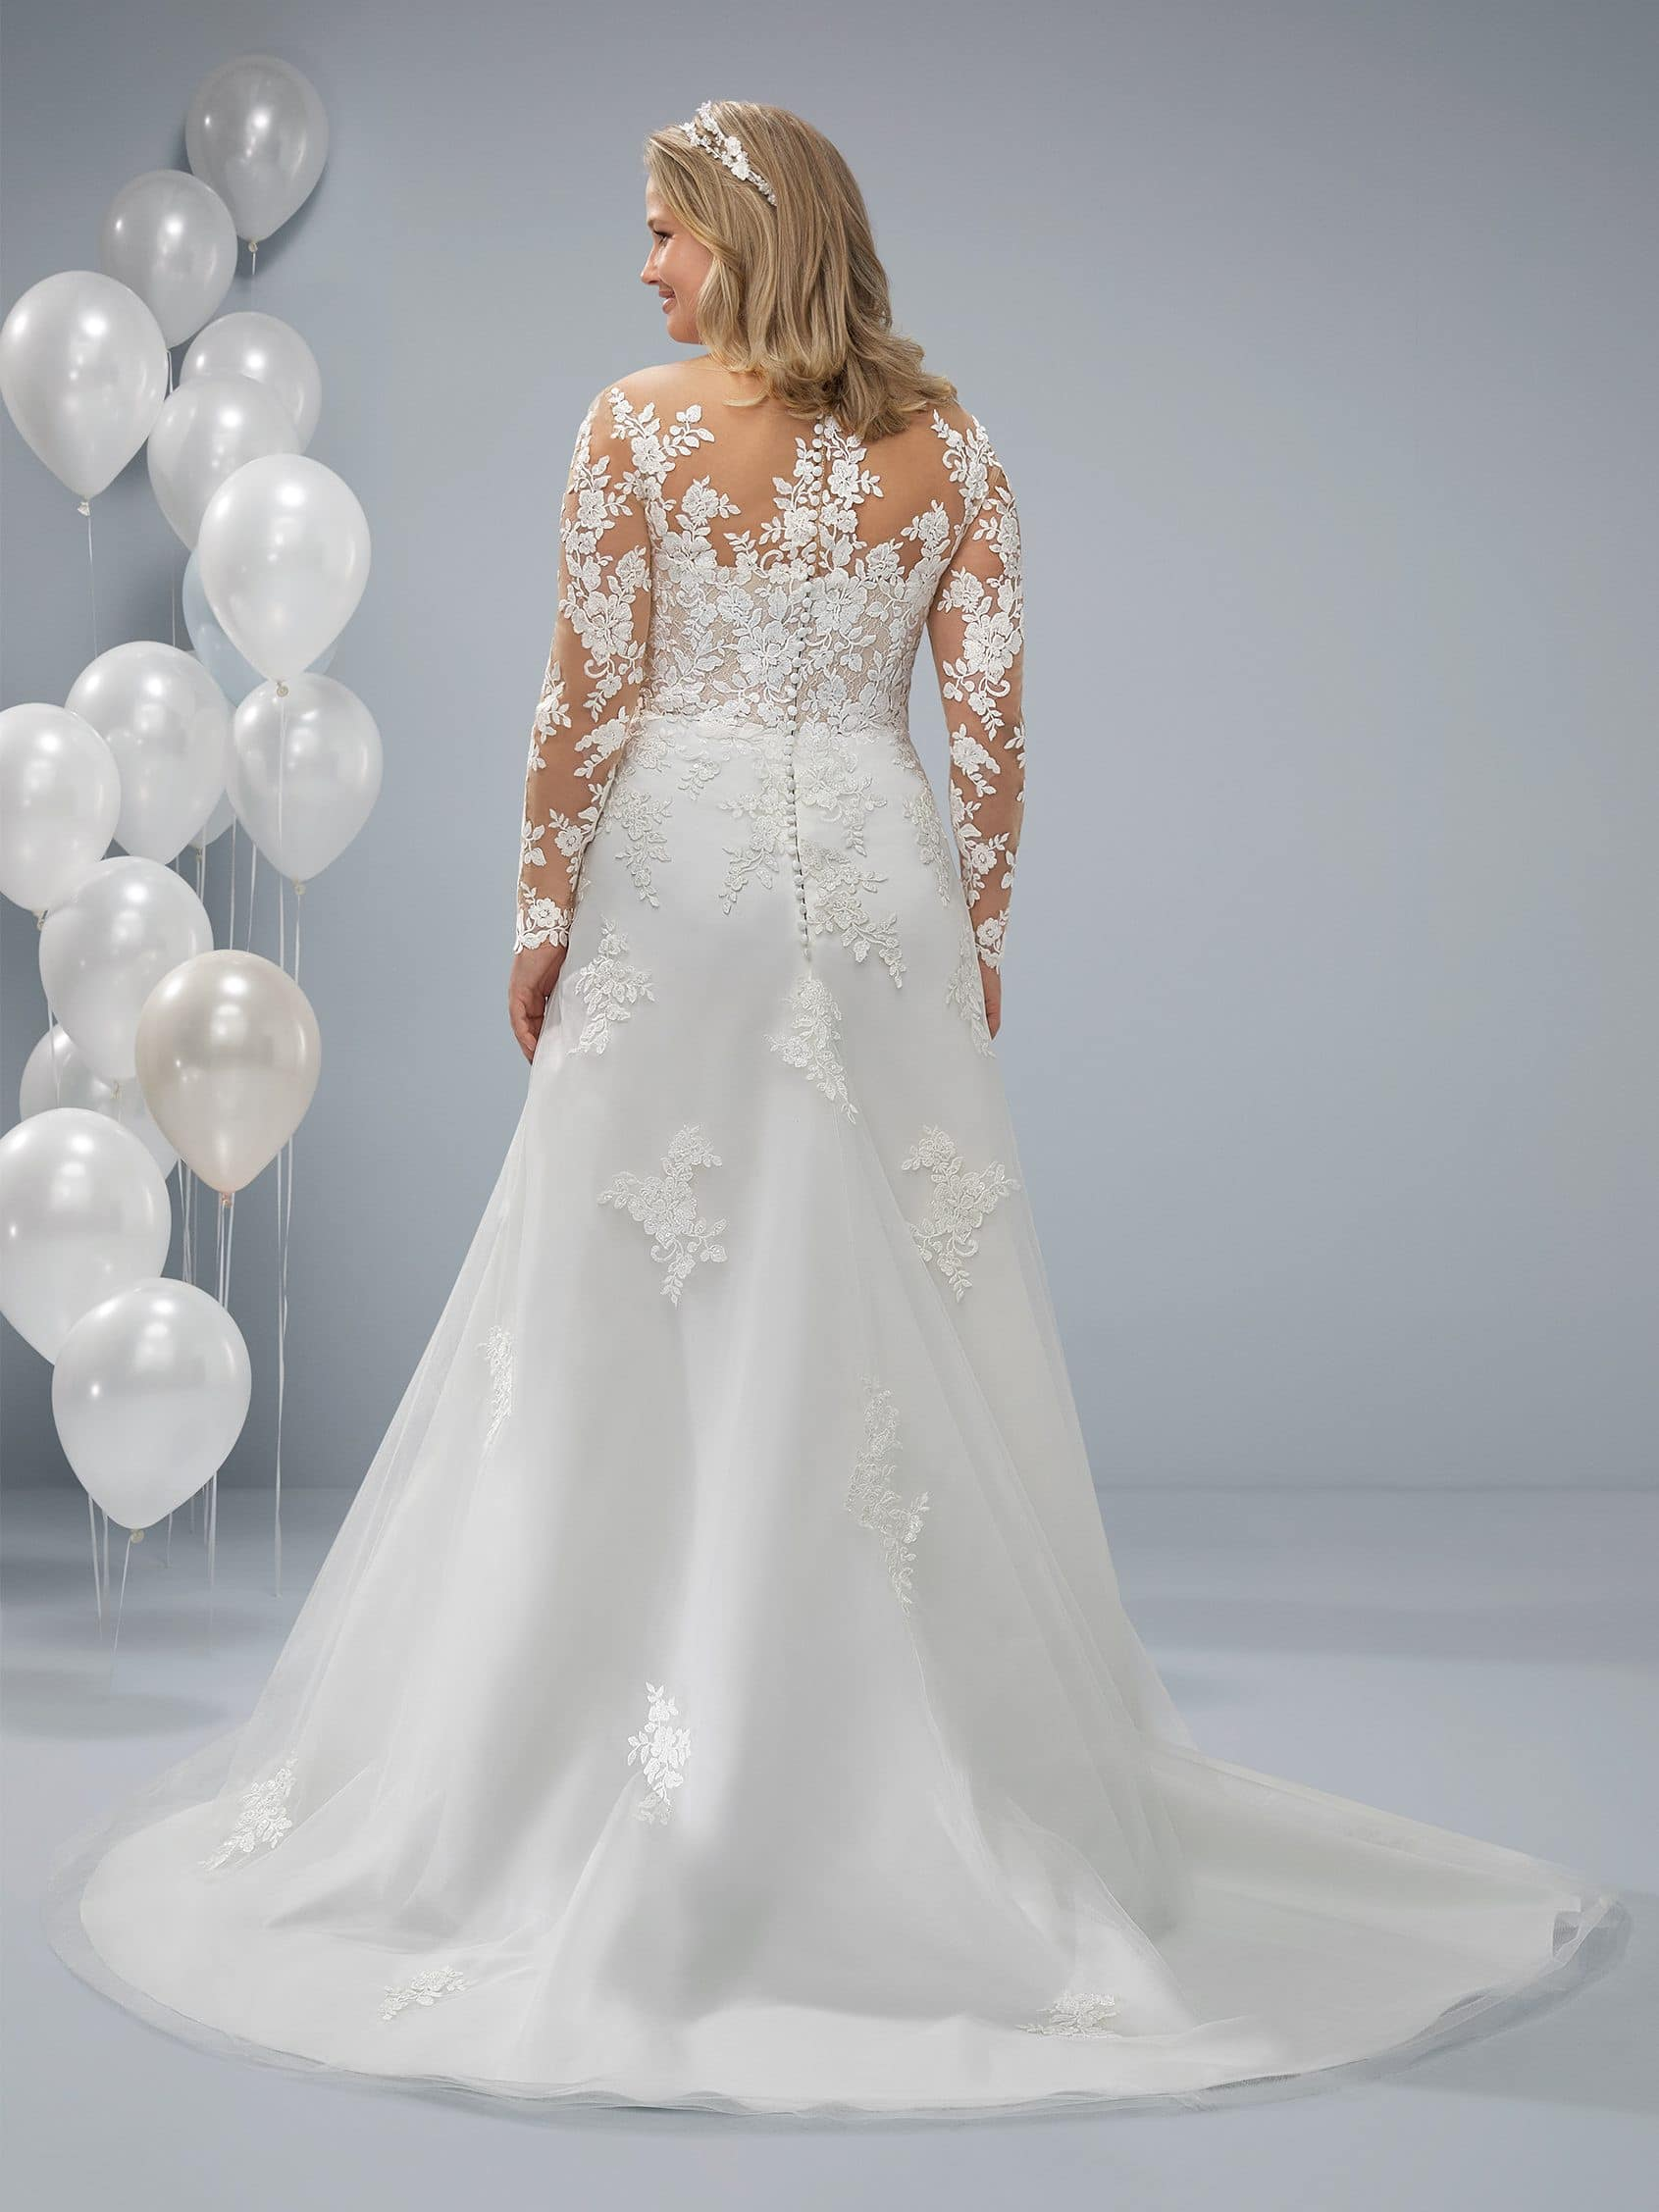 Odre Plus One Collection White De 2019Boutique Robe Mariée Paris PnwX8O0kZN